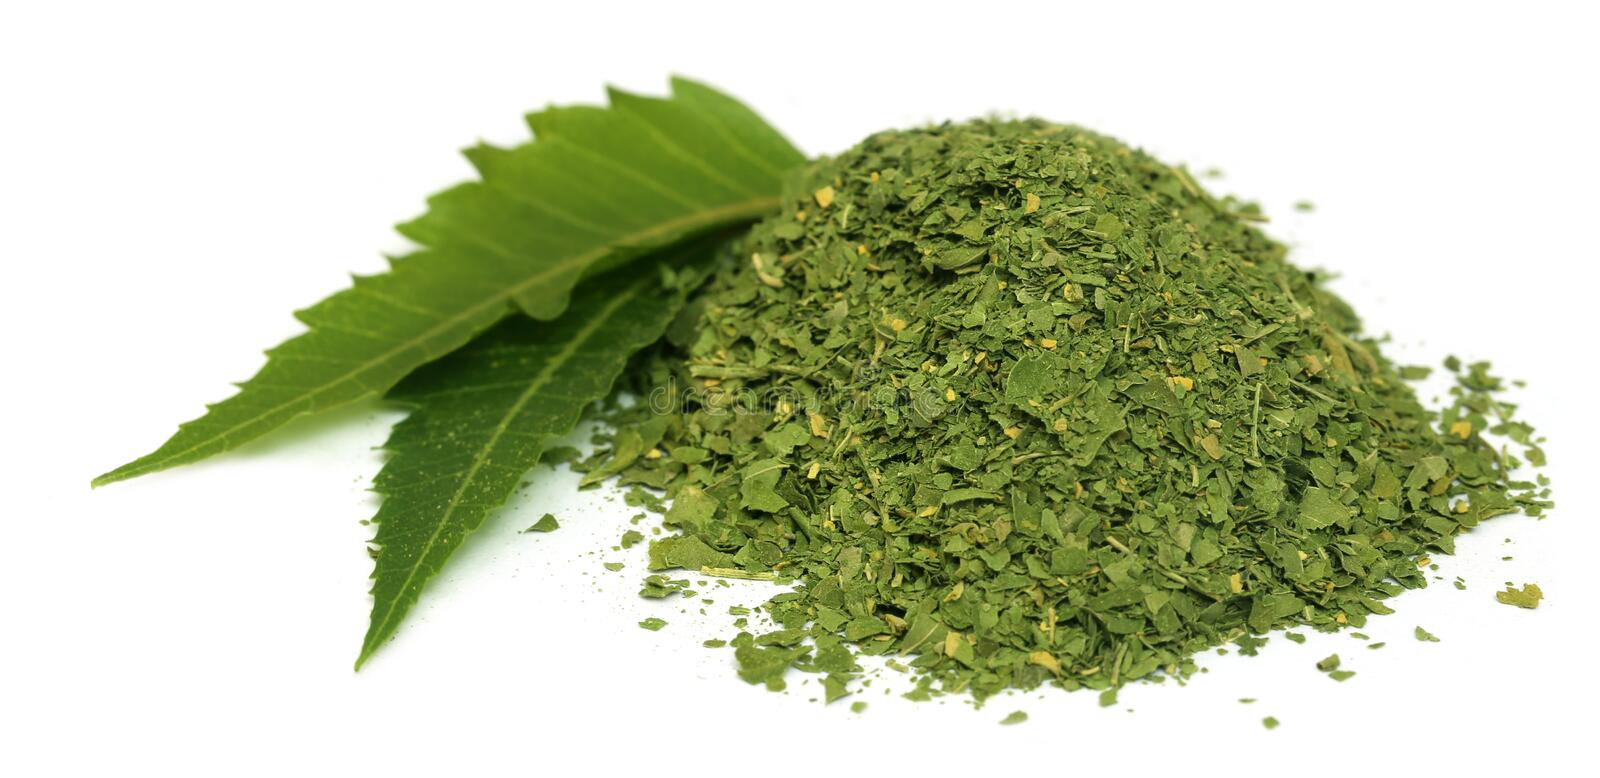 Medicinal neem leaves with dried powder stock images